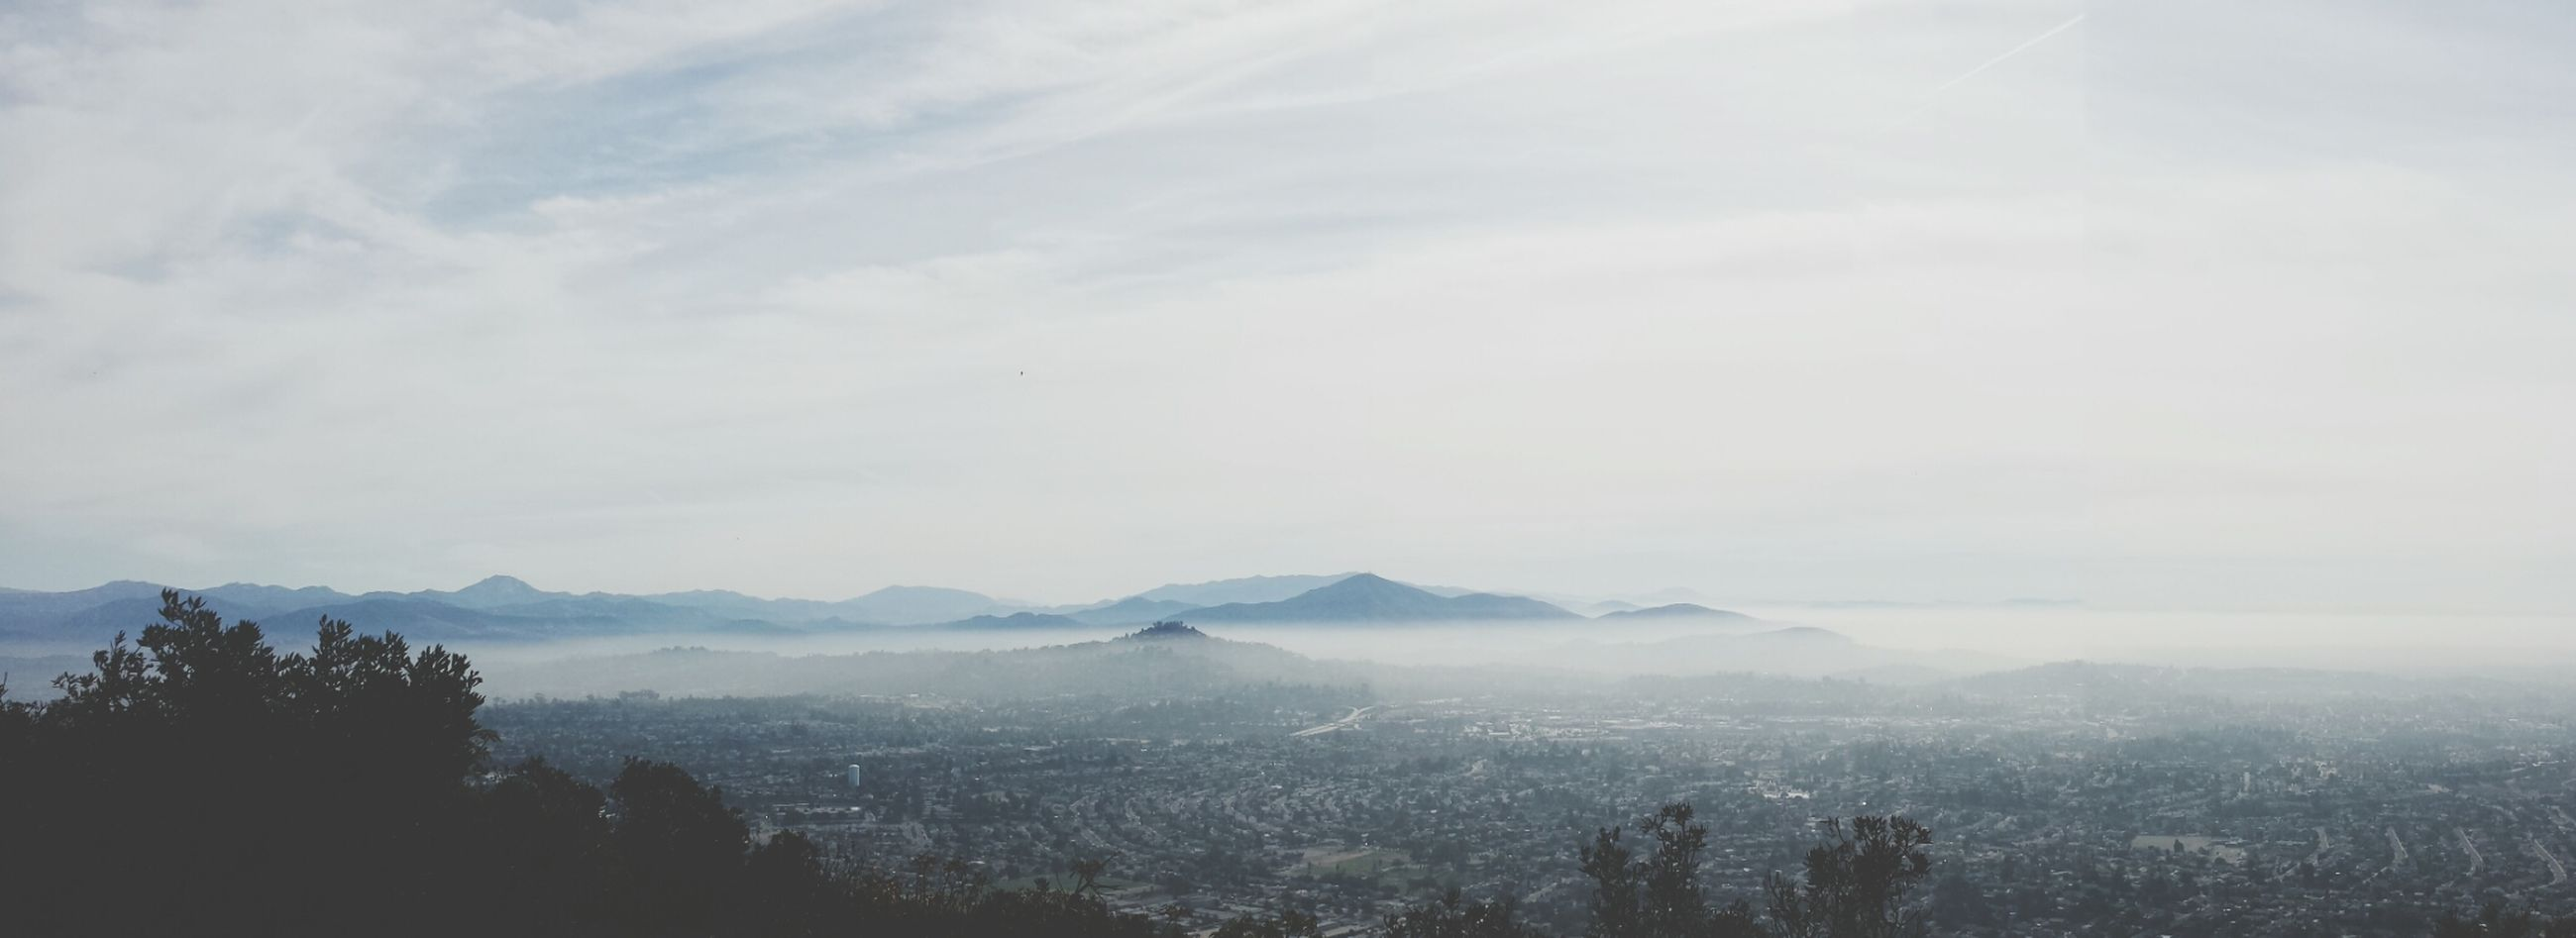 mountain, scenics, tranquil scene, beauty in nature, tranquility, landscape, sky, mountain range, nature, tree, fog, idyllic, cloud - sky, day, non-urban scene, outdoors, no people, high angle view, weather, aerial view